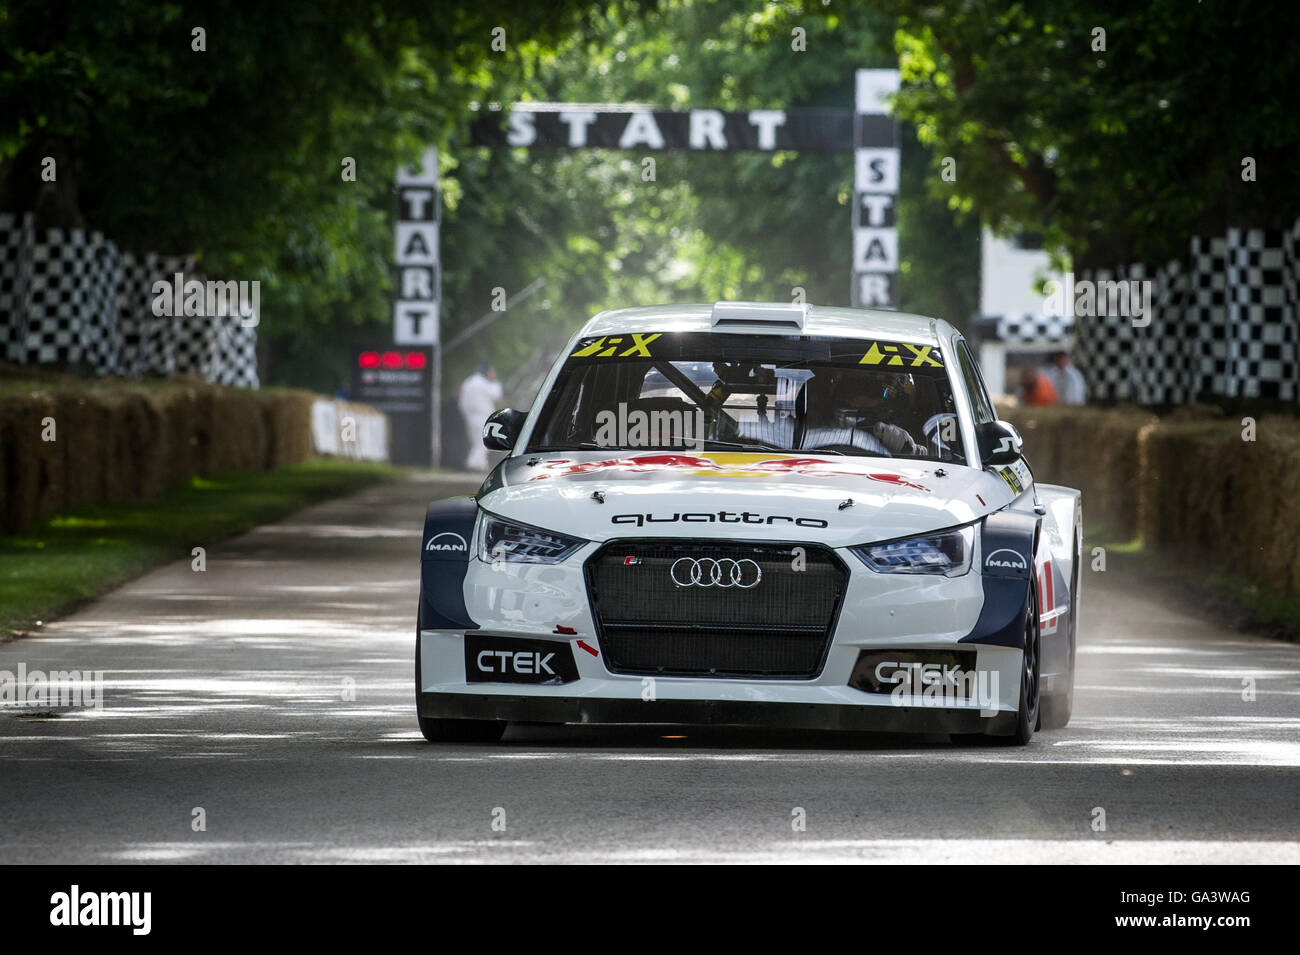 Andrew Jordan Drives The Audi S EKS RX Rallycross Car Up The Hill - Audi car jordan